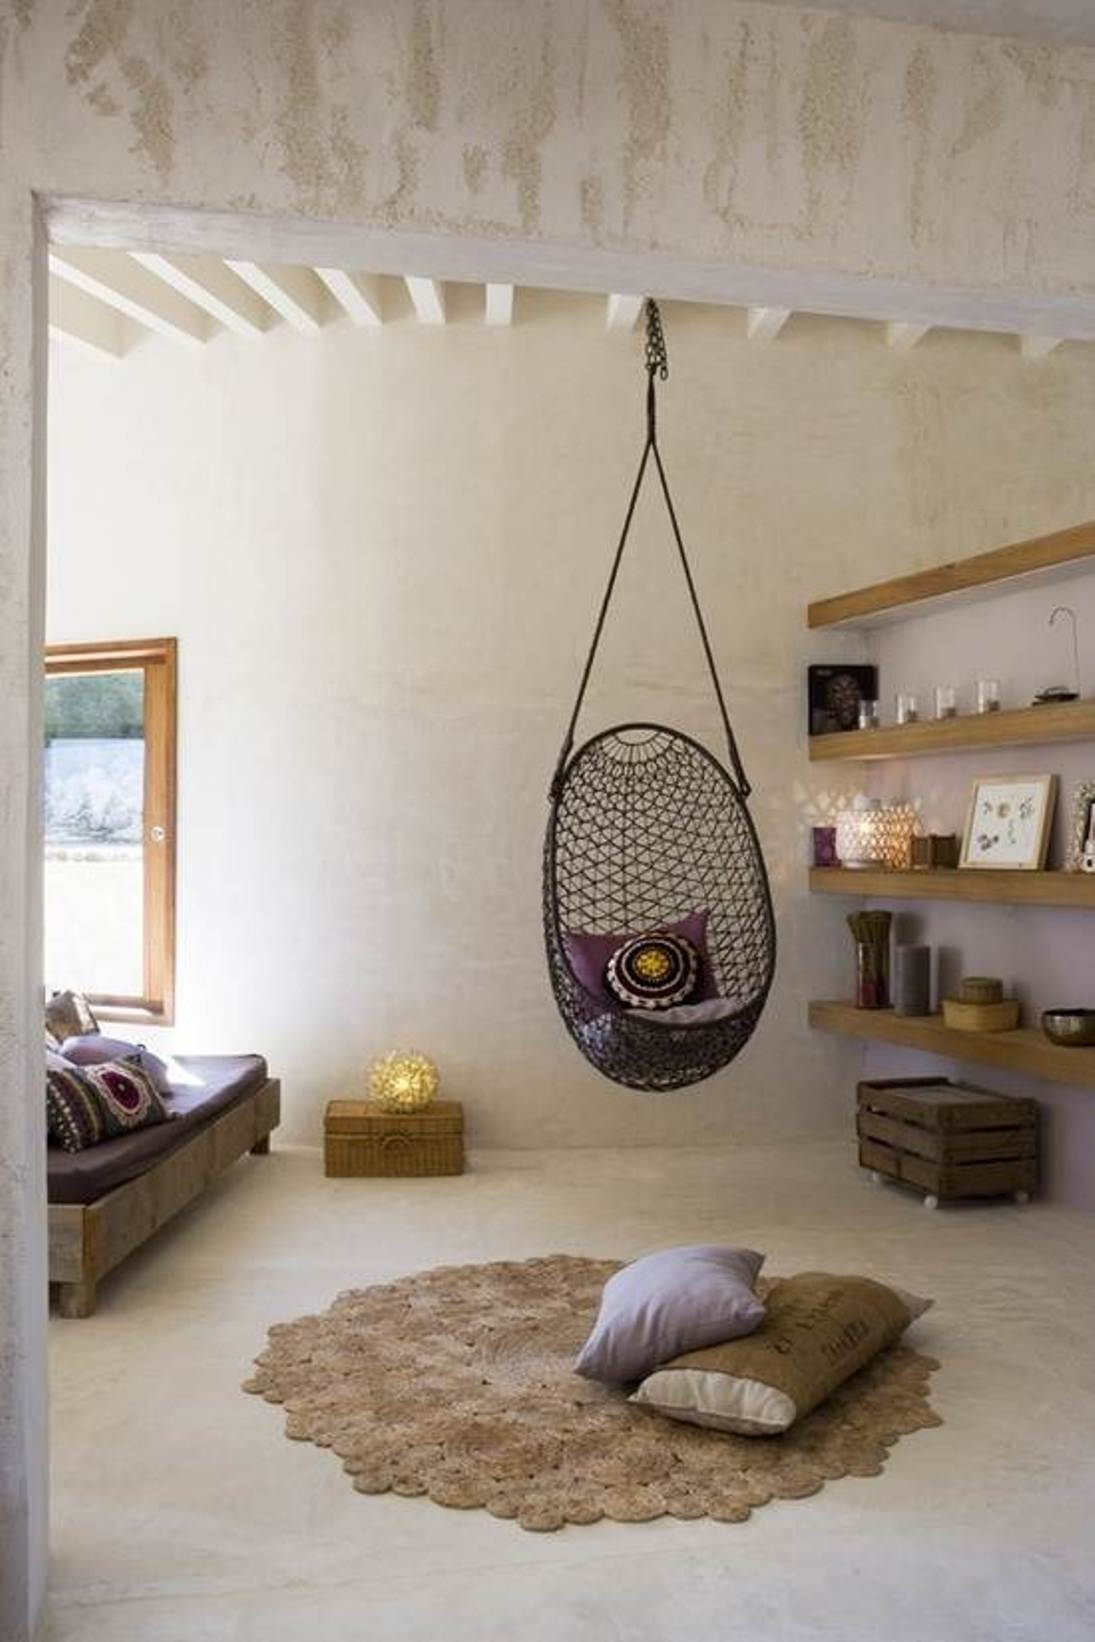 Egg Chair That Hangs From The Ceiling Charming Home Furniture Ideas With Chairs That Hang From